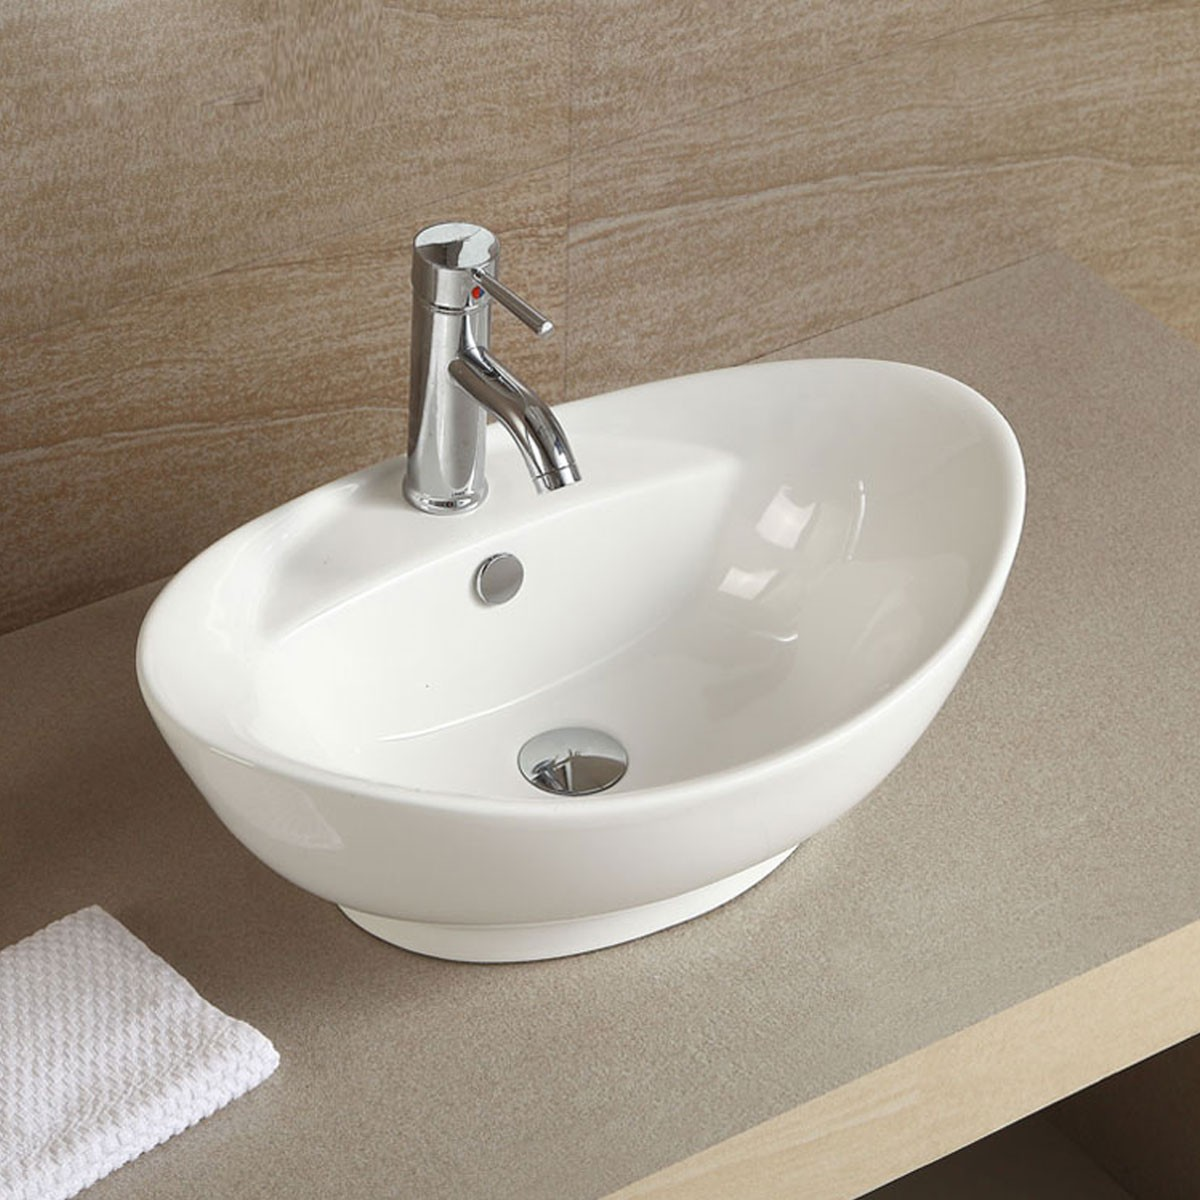 Decoraport White Oval Ceramic Above Counter Basin Vessel Vanity Sink (CL-1038)